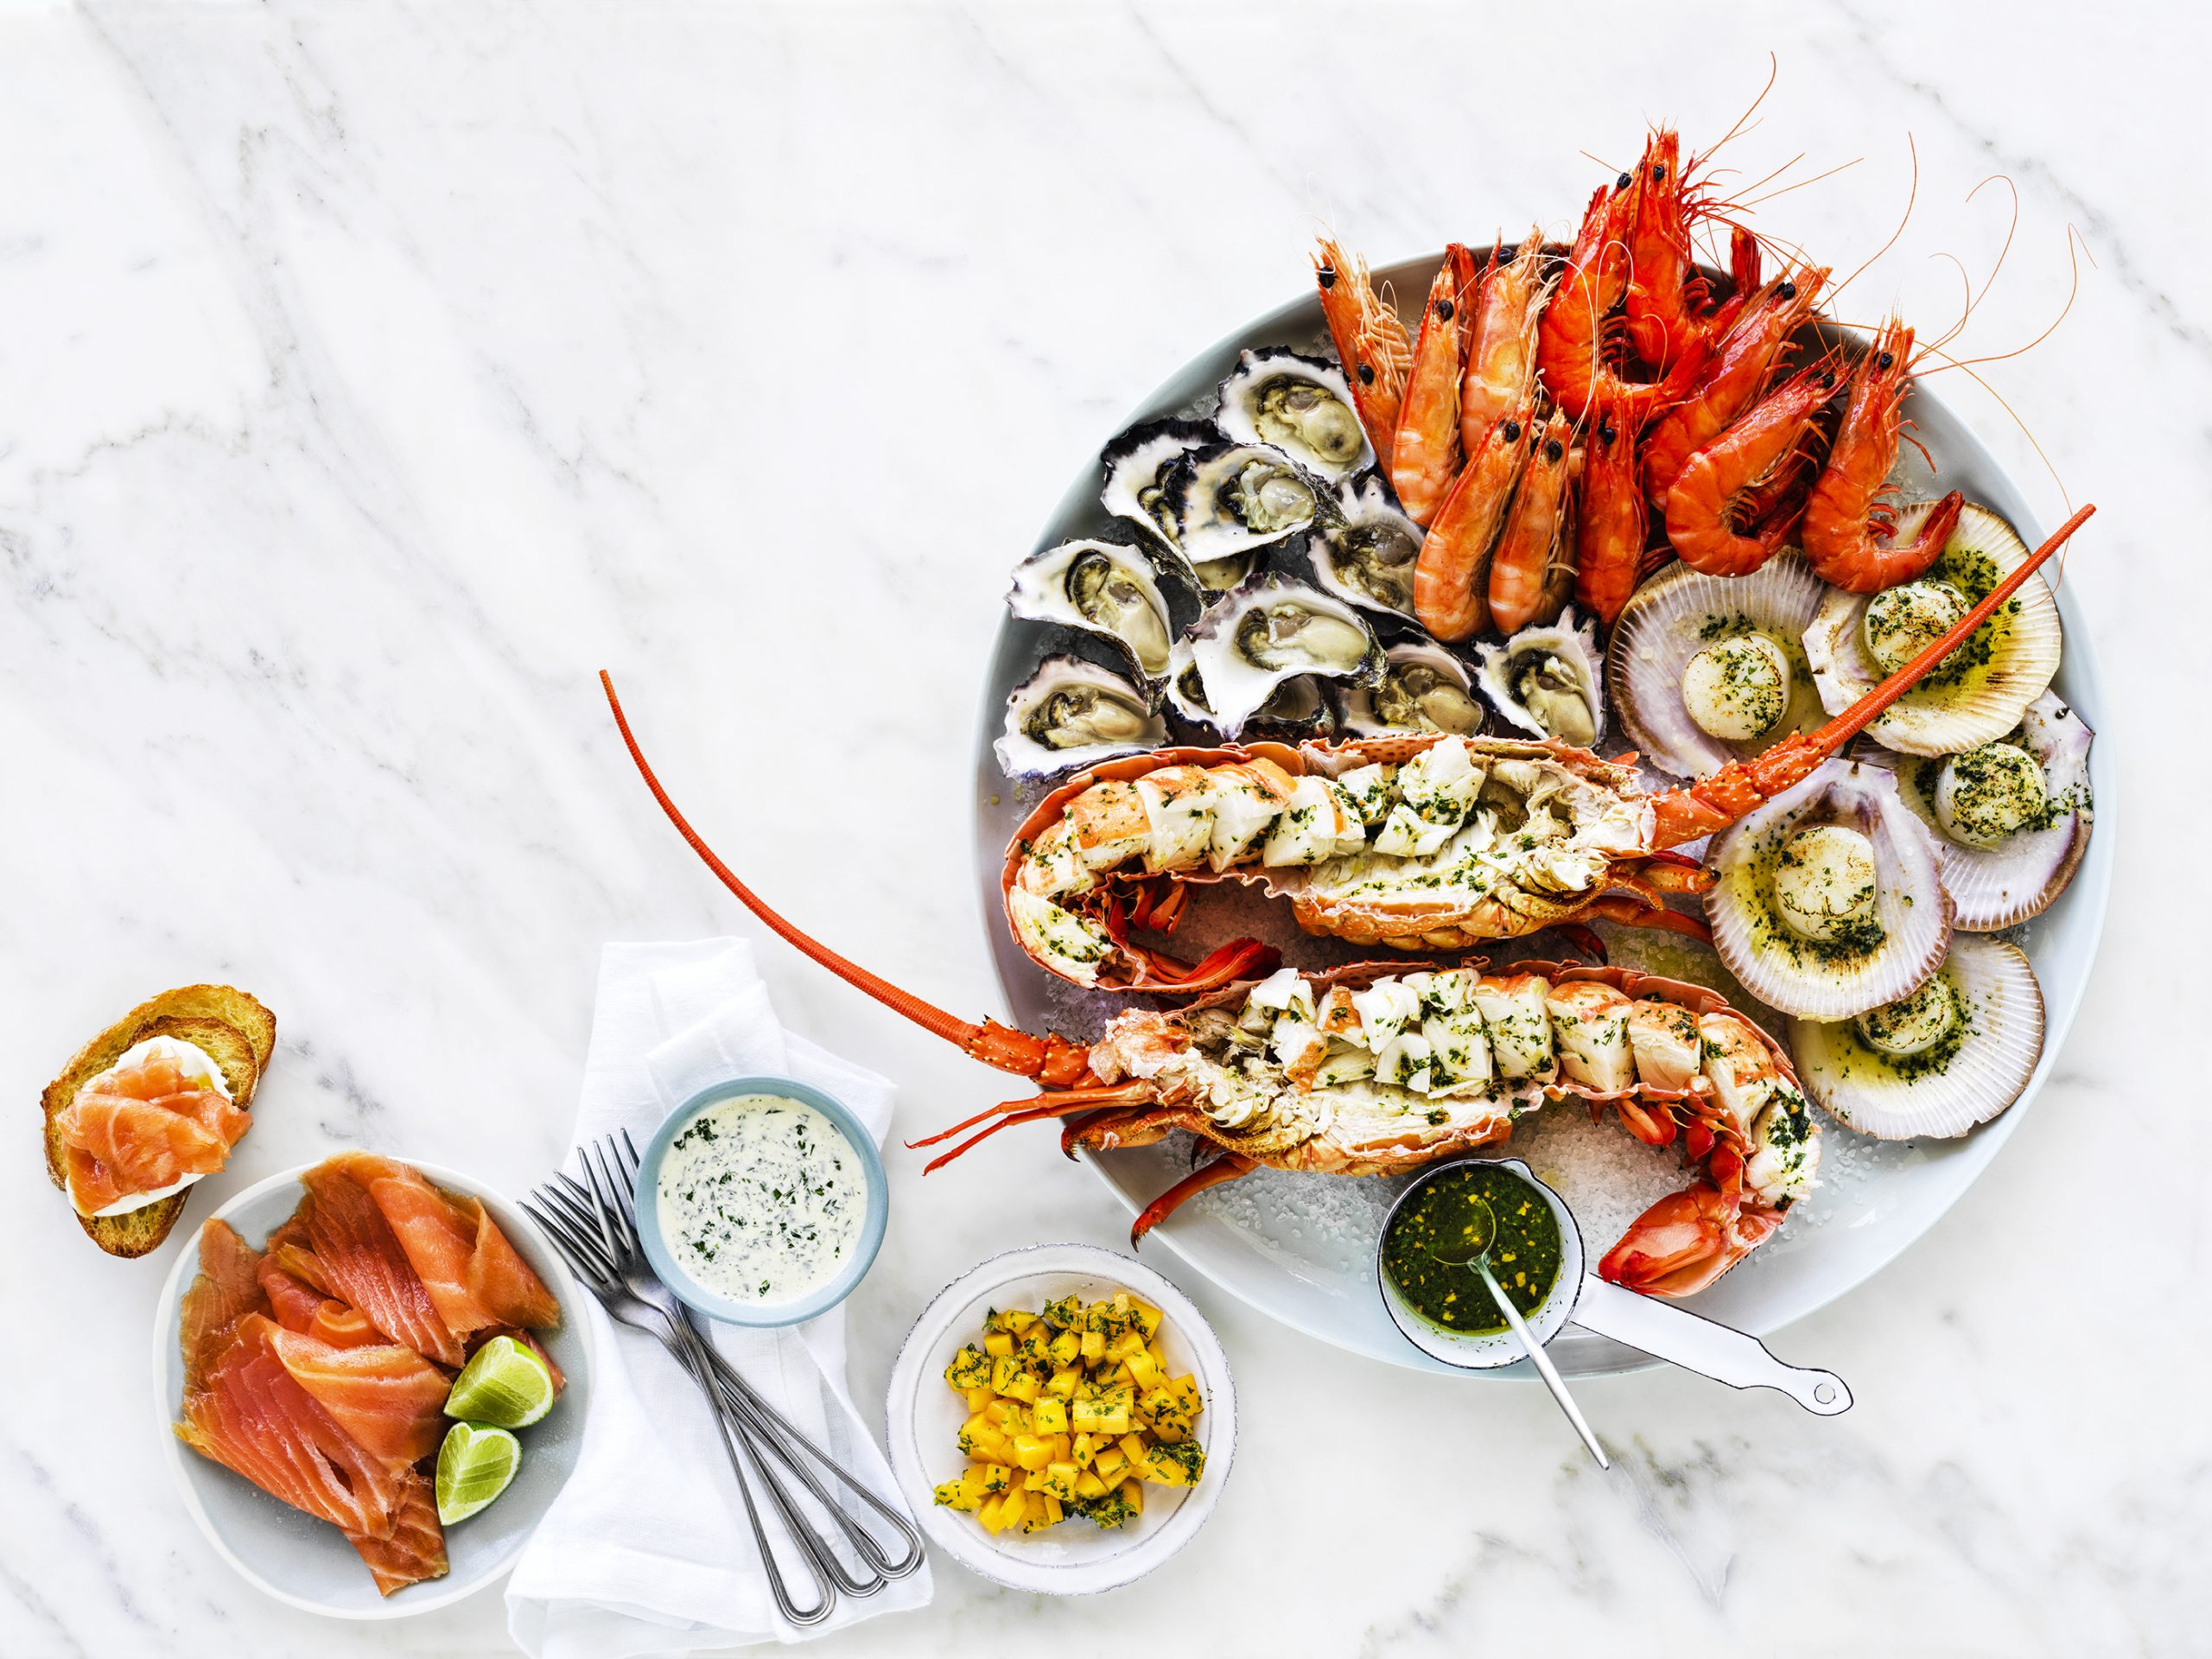 'Great Australian Seafood, Easy As': Australia seafood industry launches national brand and consumption marketing campaign